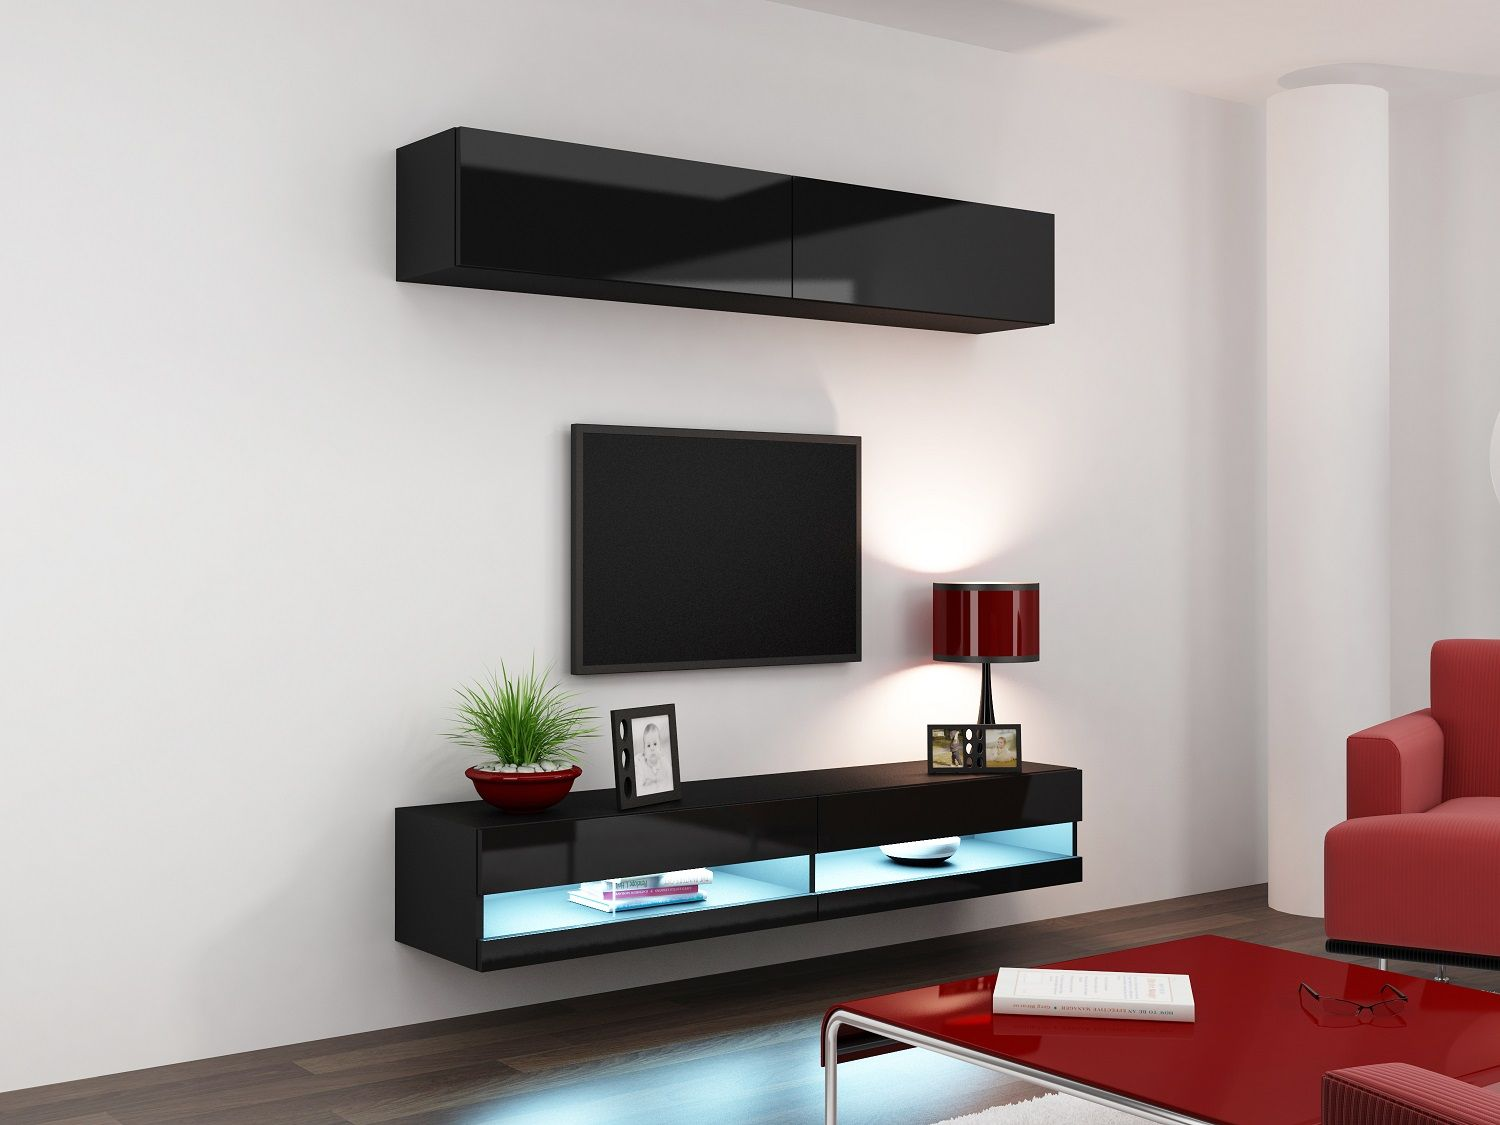 Mega Muebles Mueble Tv Lcd Vajillero Rack Horizontal Led Mega Cell